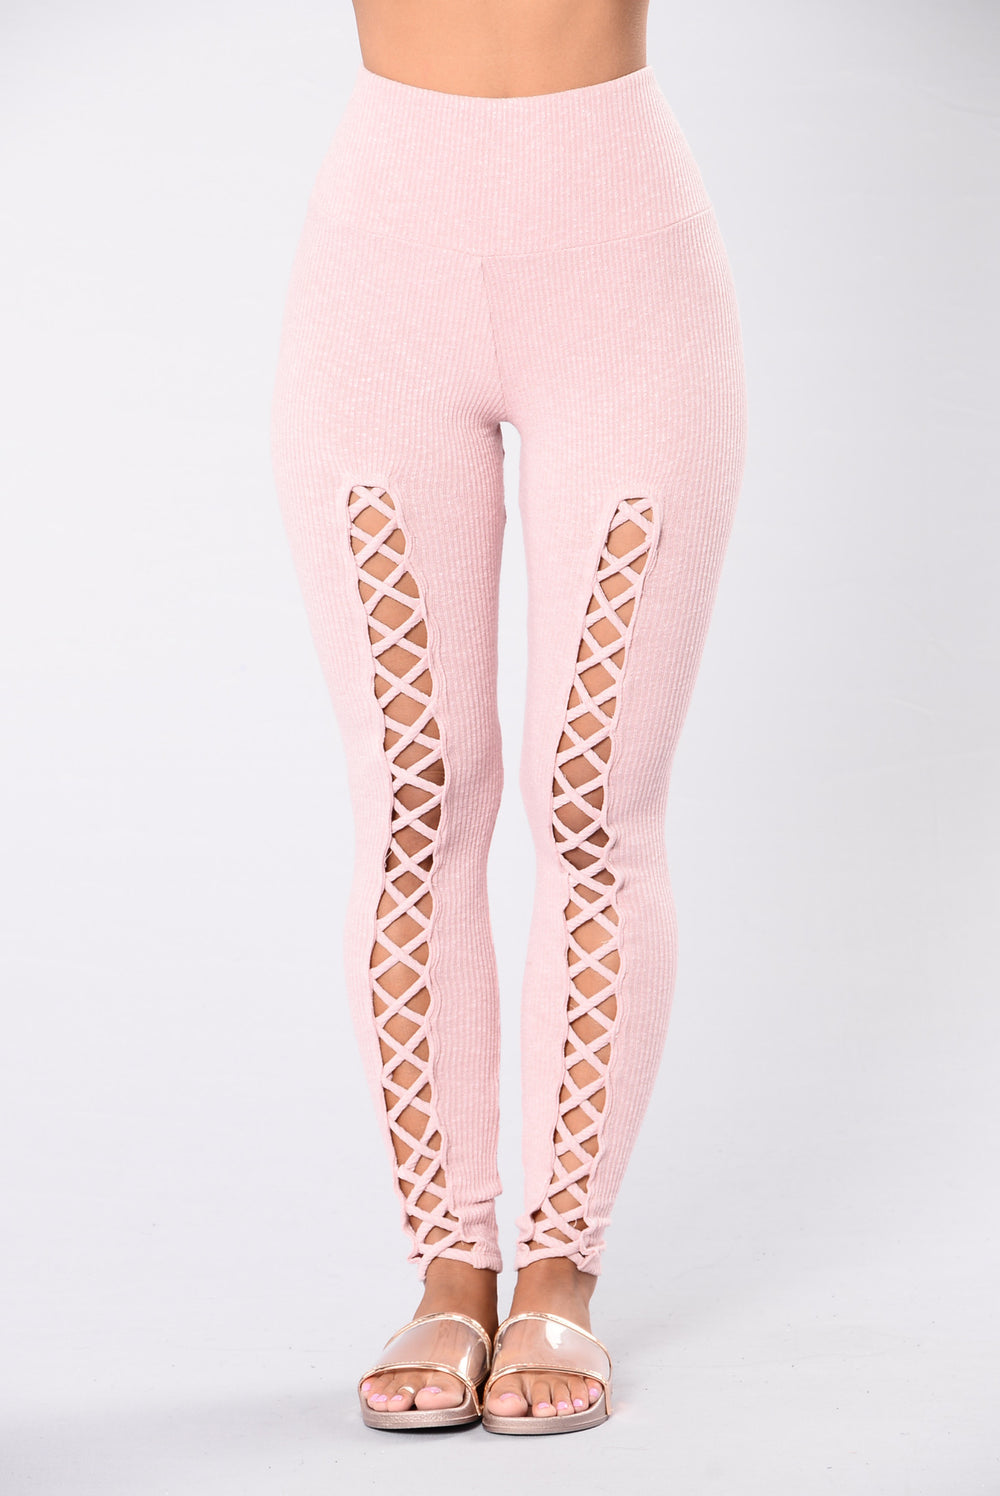 Best leggings for everyday pink blush color